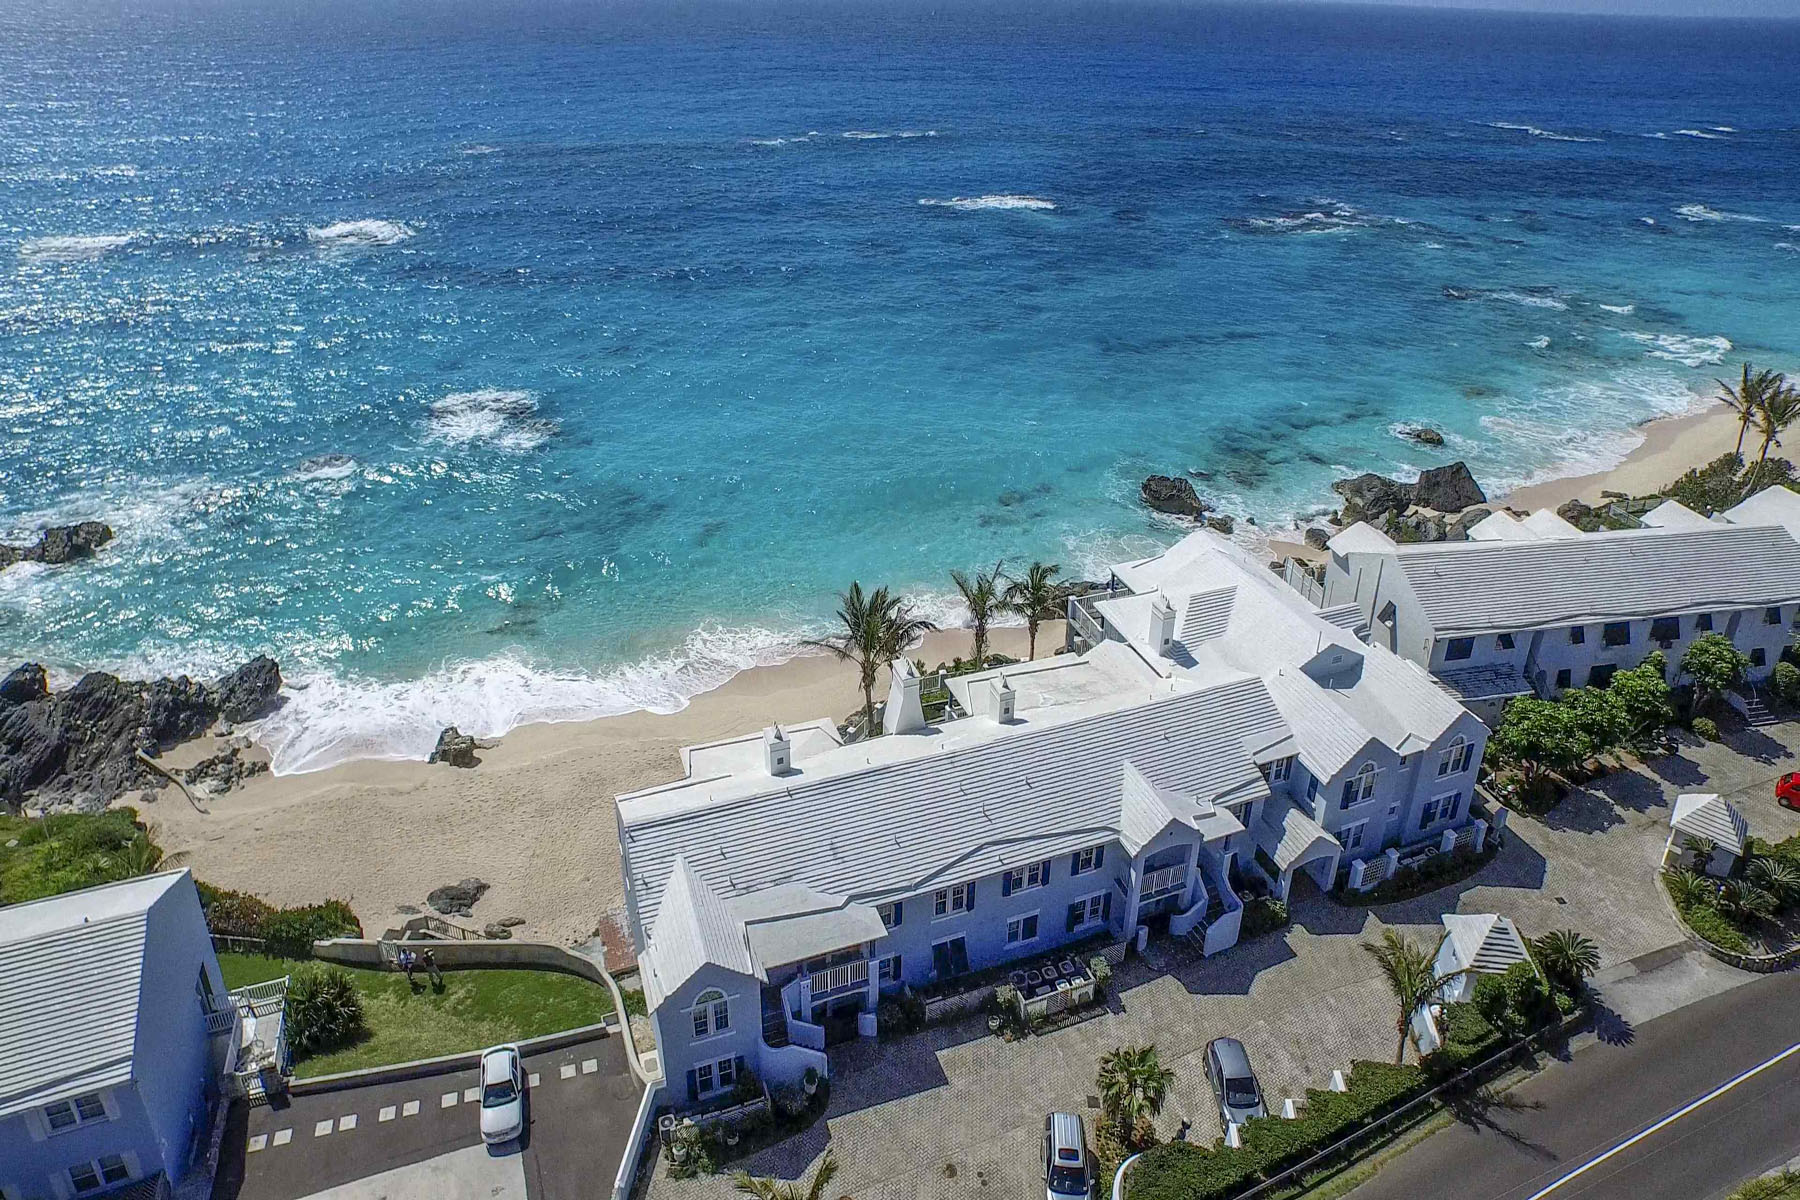 Condominium for Sale at Breakers 15 Warwick, WK02 Bermuda